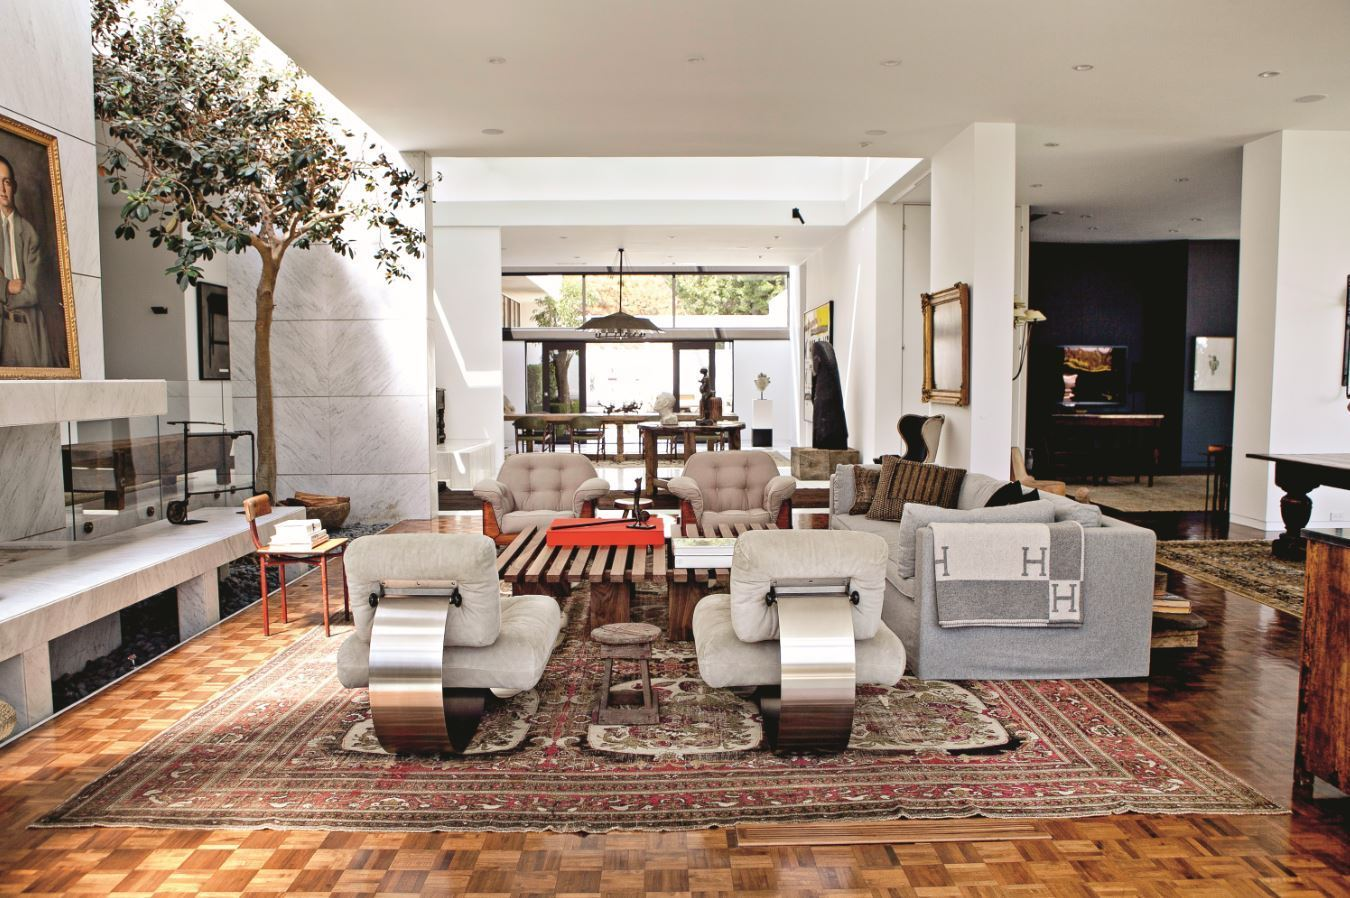 Ellen degeneres takes us inside her pretty houses in 39 home Home interior book